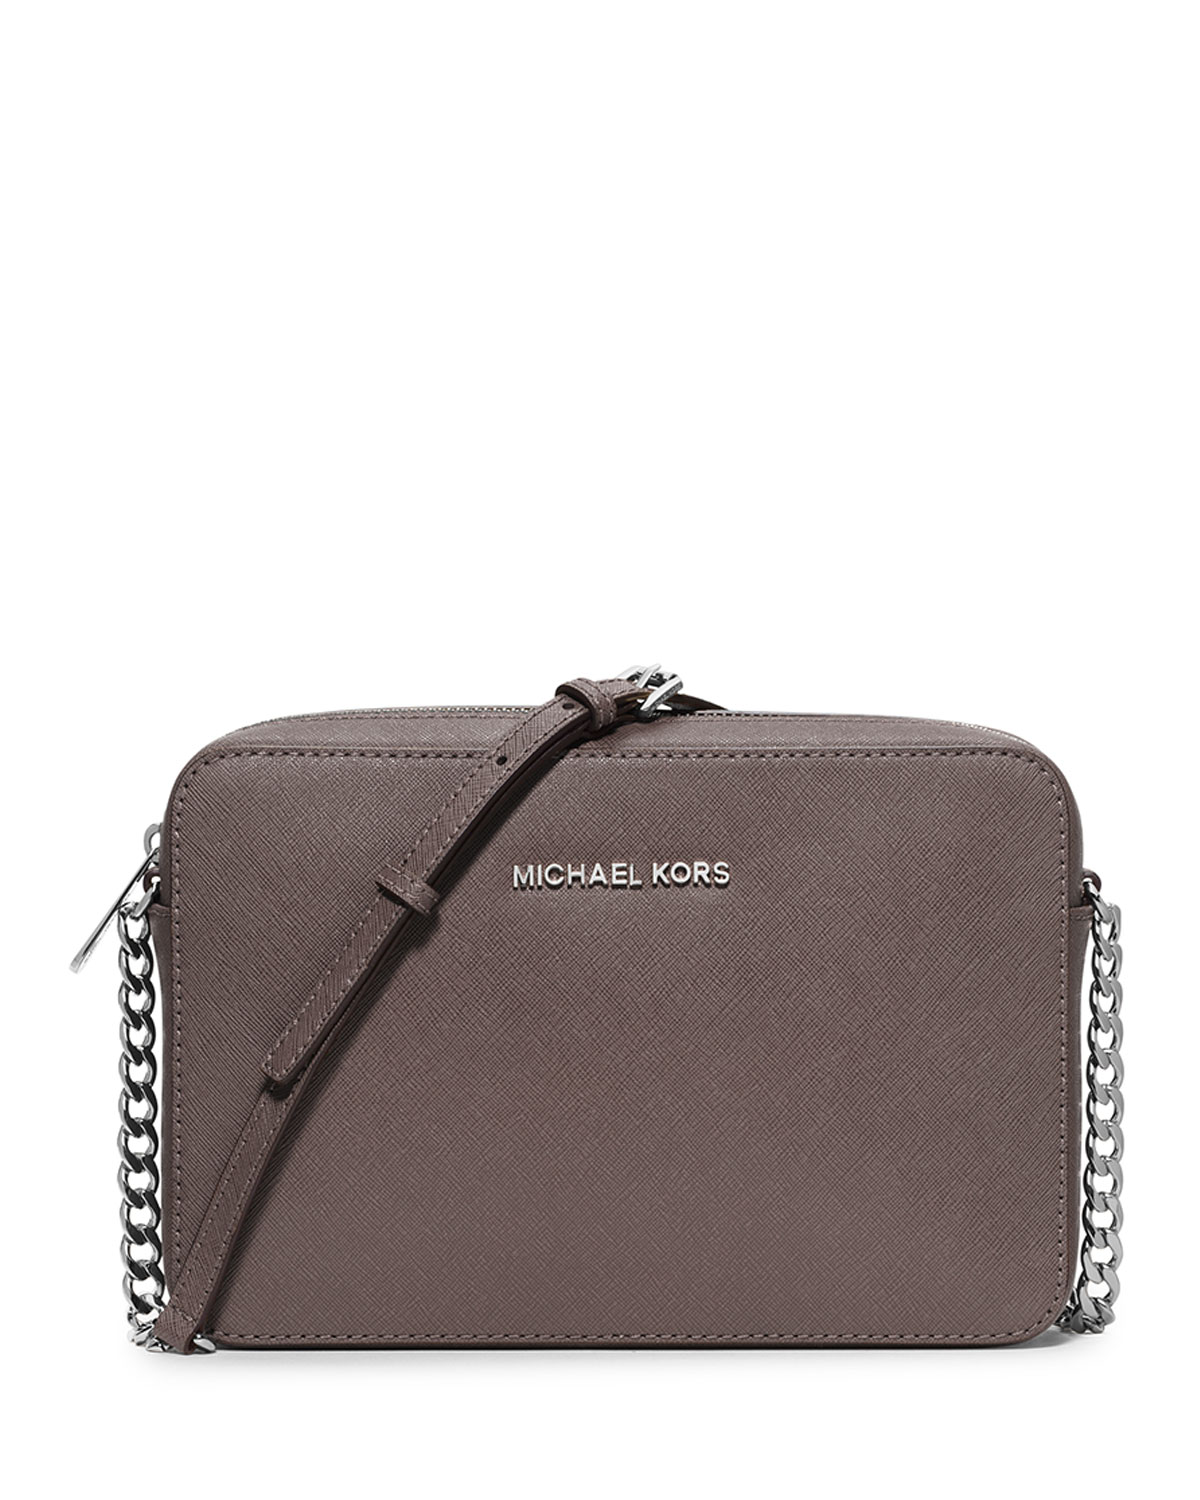 MICHAEL Michael Kors Jet Set Travel Large Crossbody Bag 8ef0dead59a